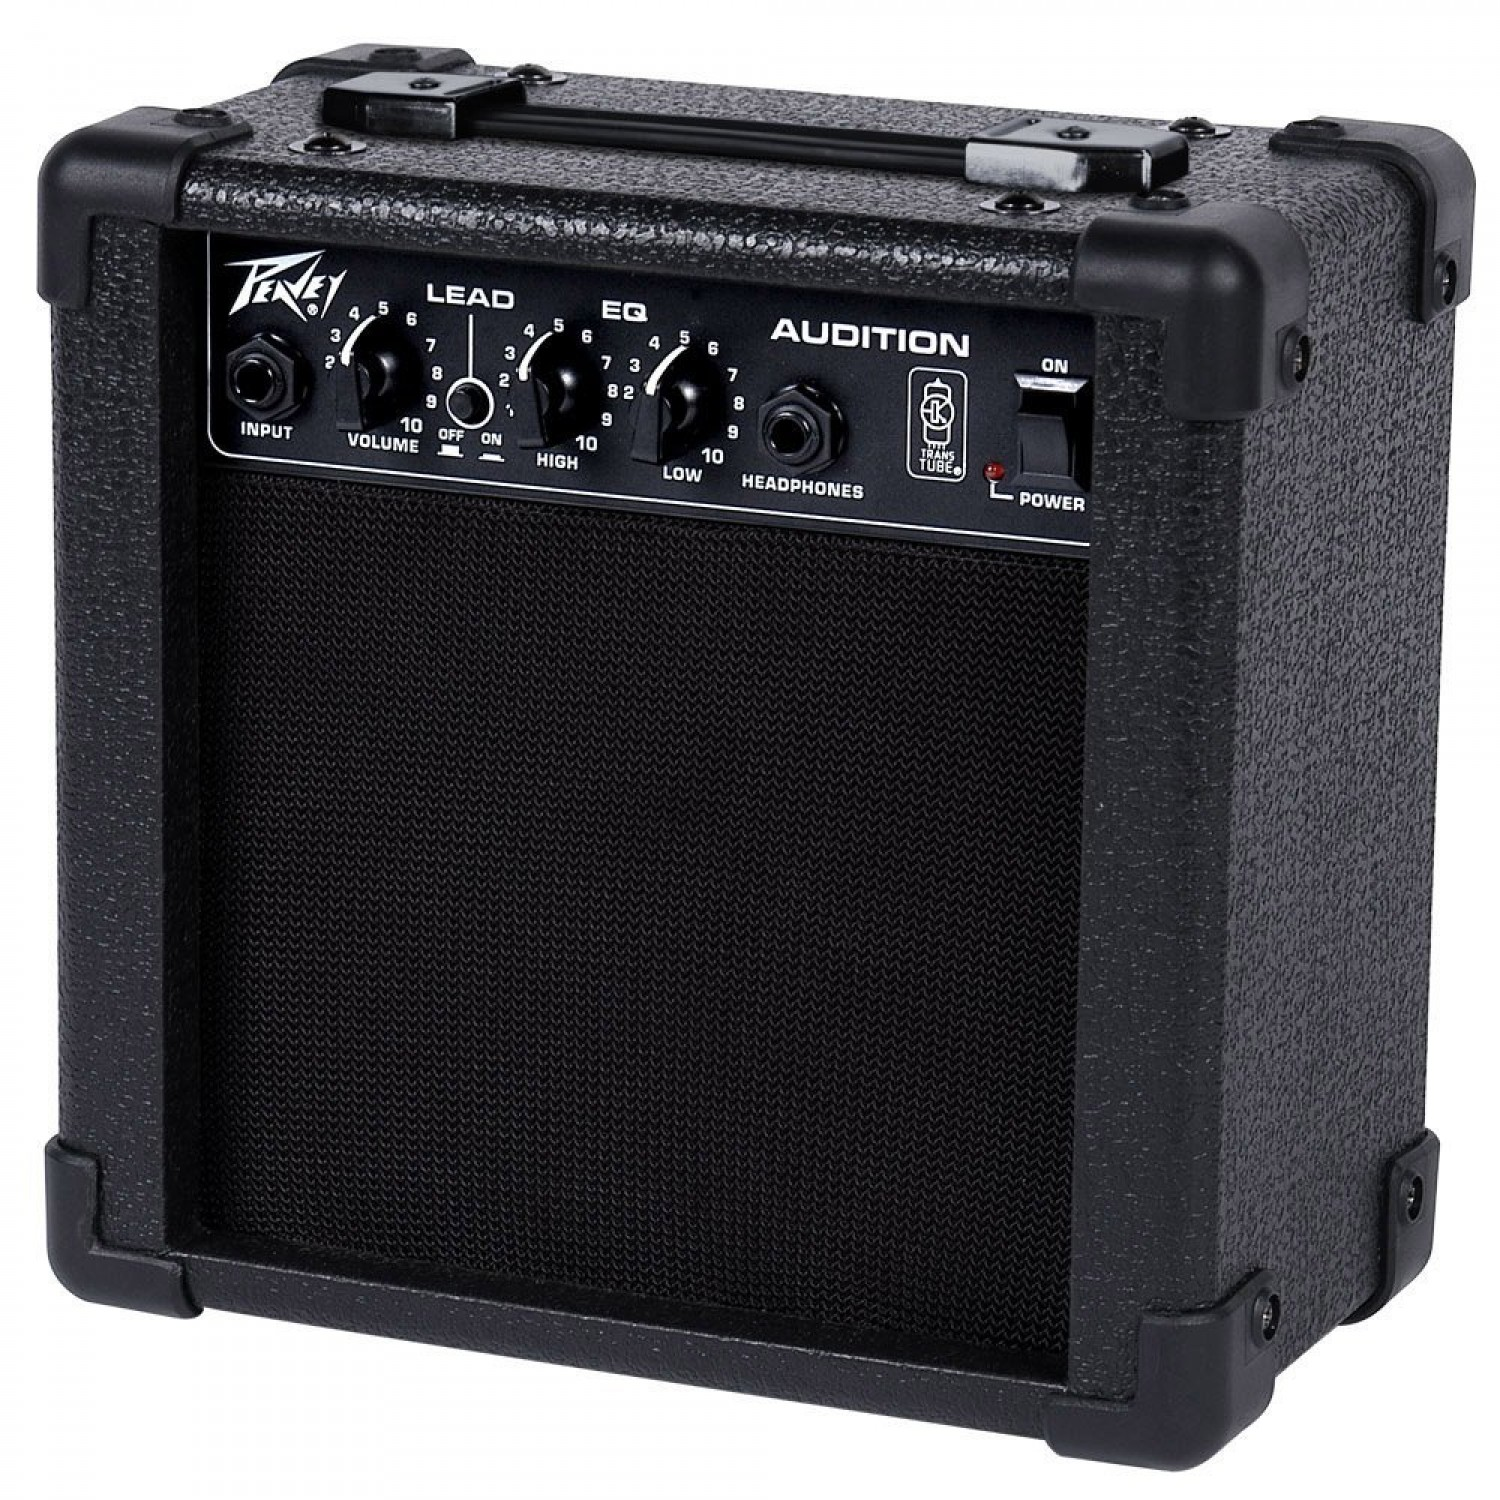 Cubo Amplificador de Guitarra Peavey Audition 110V